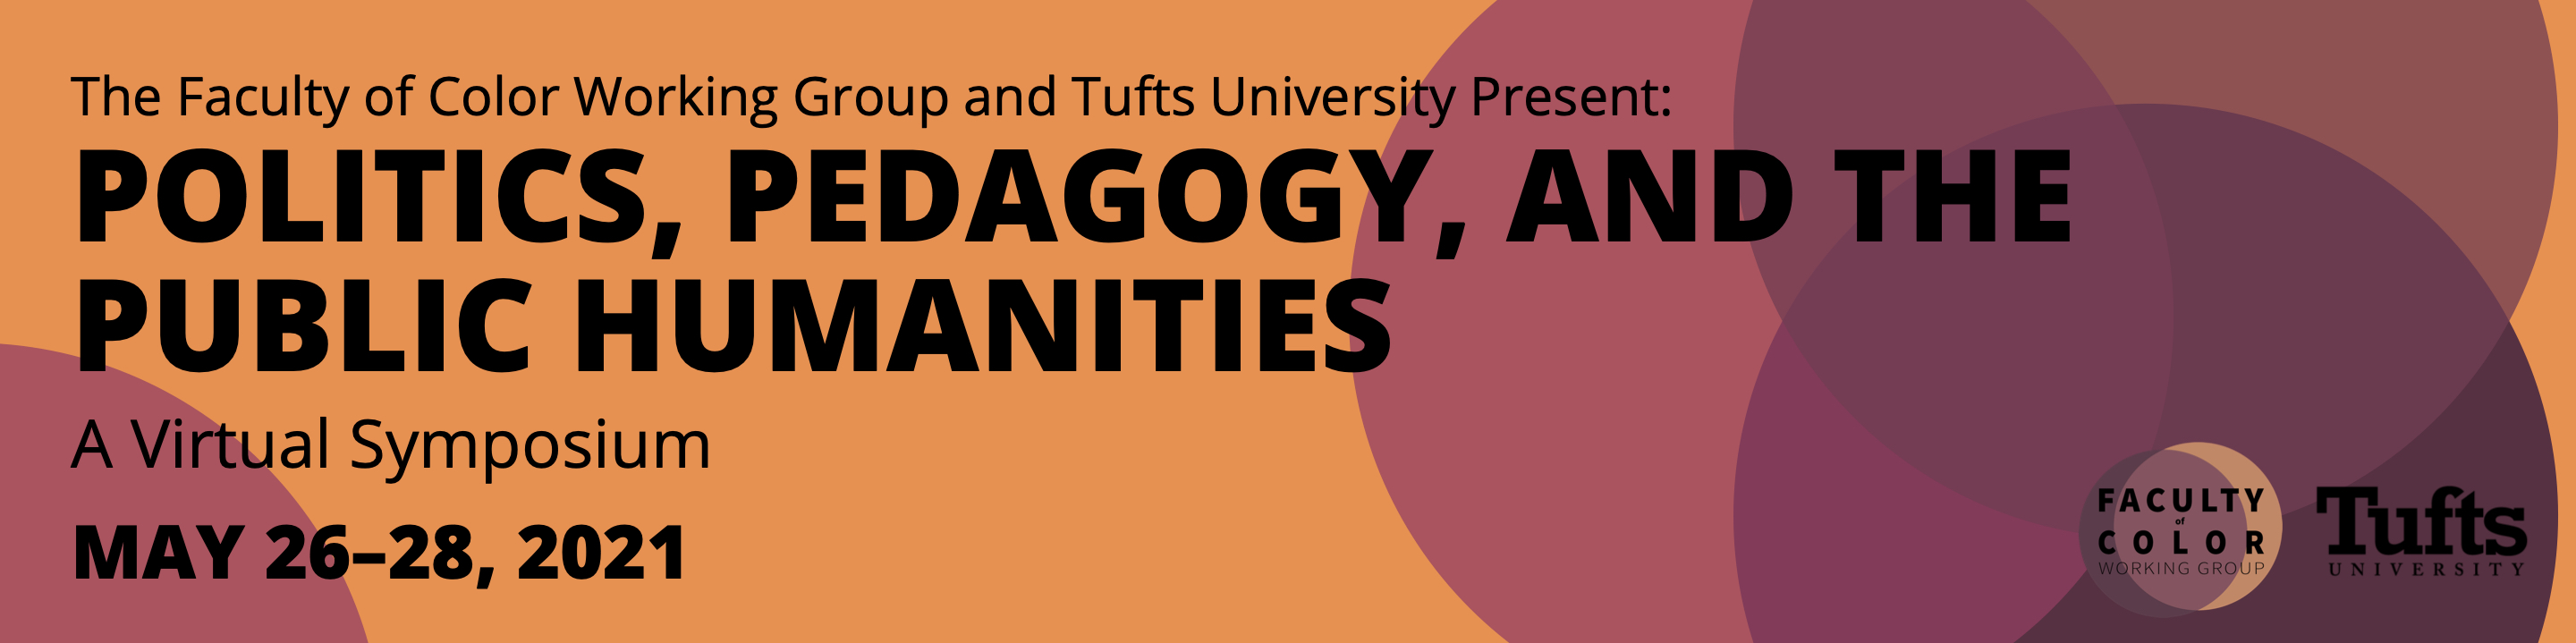 The Faculty of Color Working Group and Tufts University Present: Politics, Pedagogy, and the Public Humanities. A Virtual Symposium. May 26–28, 2021.